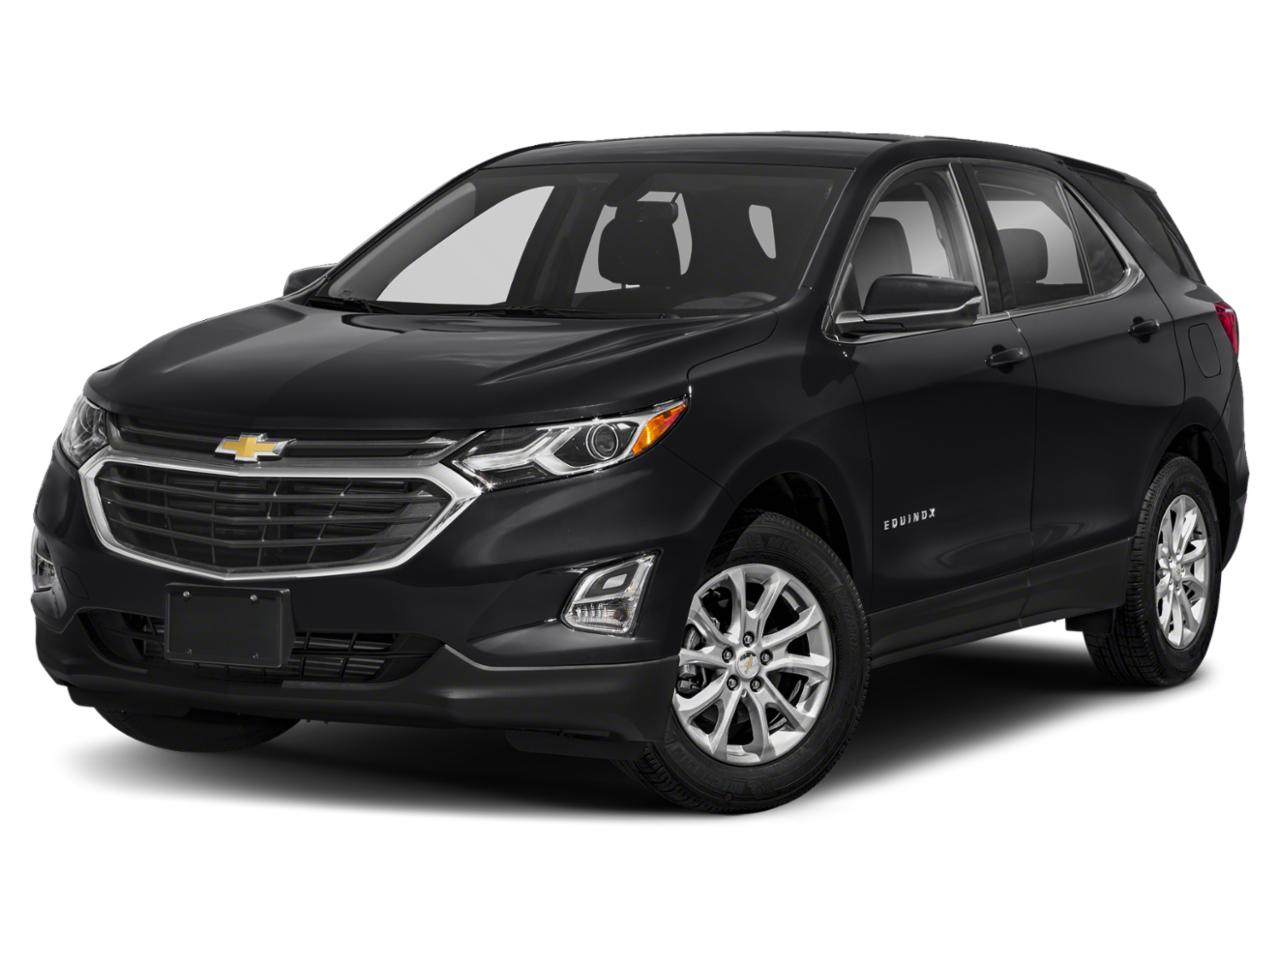 2019 Chevrolet Equinox Vehicle Photo in Lewisville, TX 75067